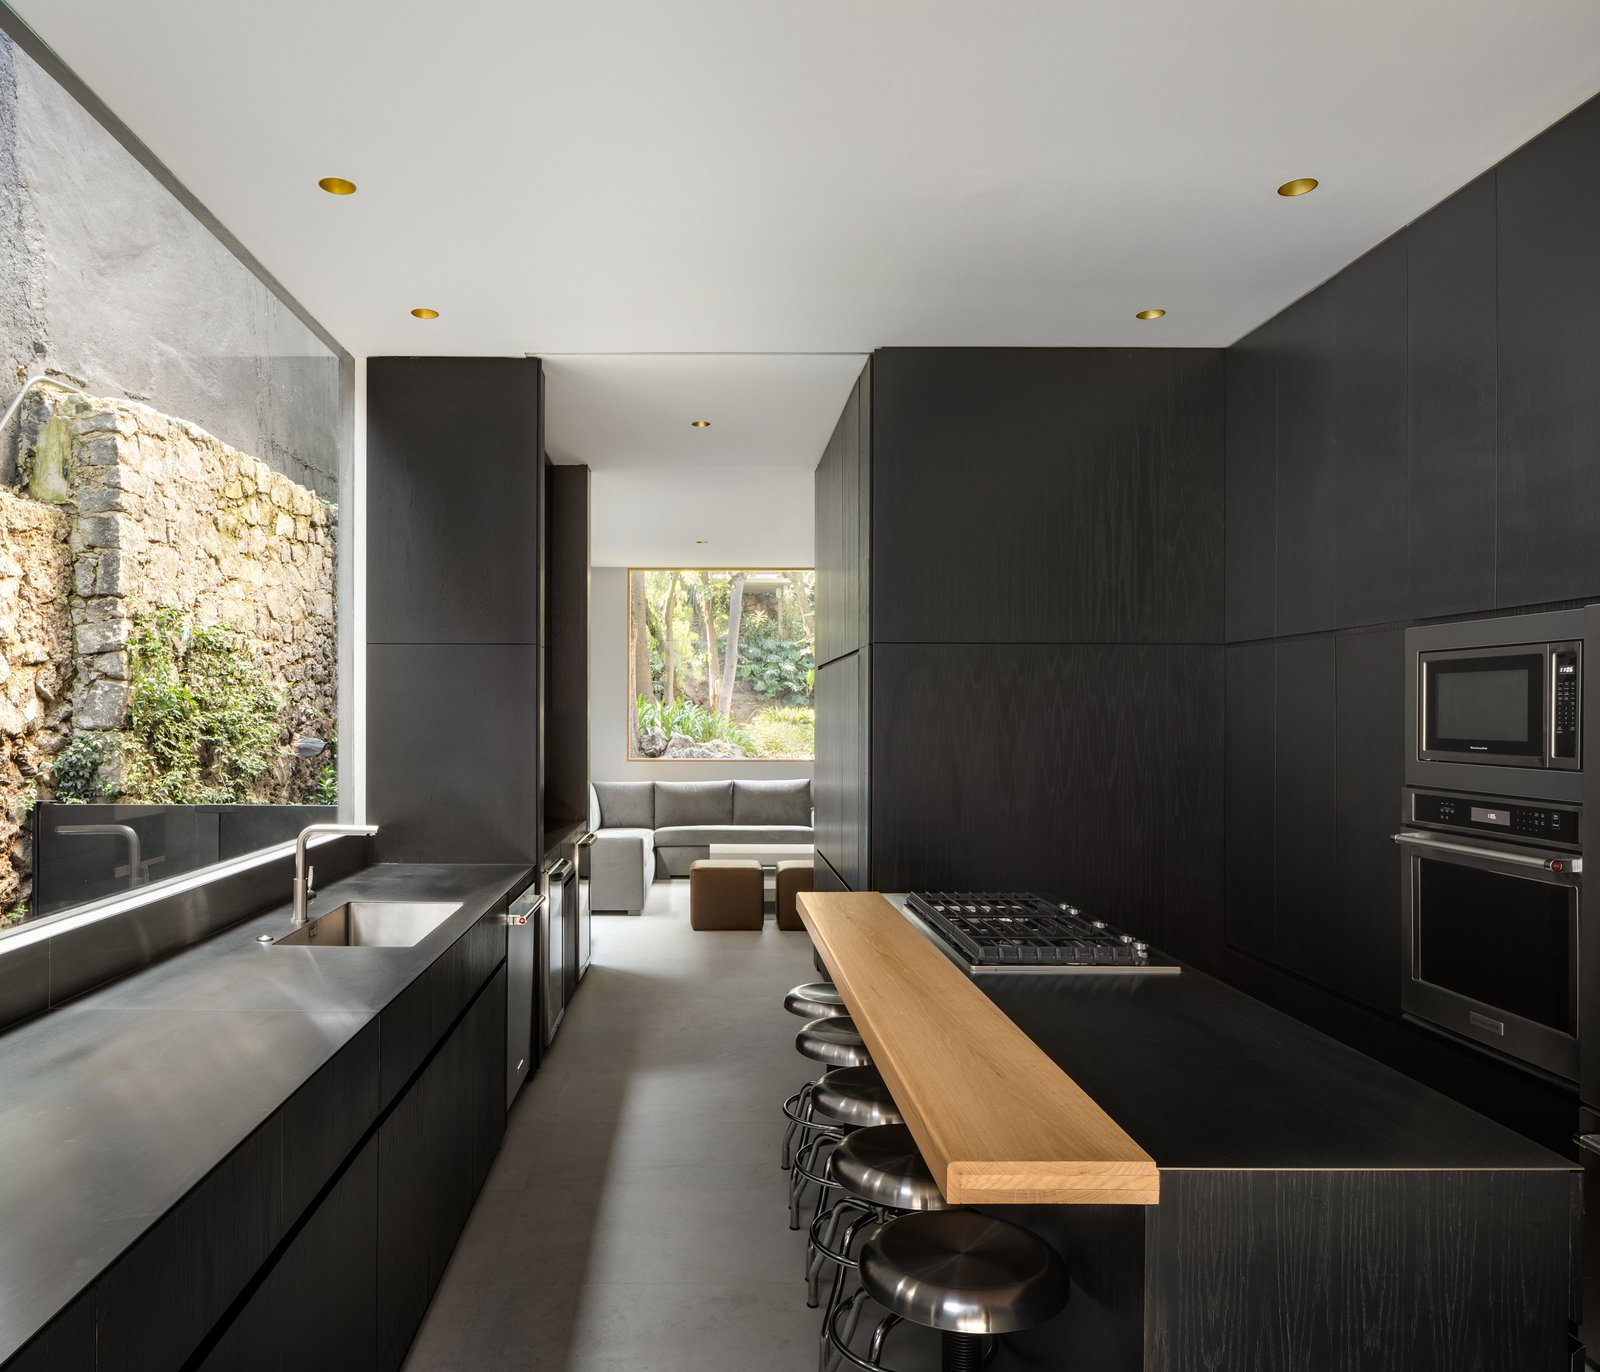 Lluvia by PPAA black kitchen with stainless-steel countertops